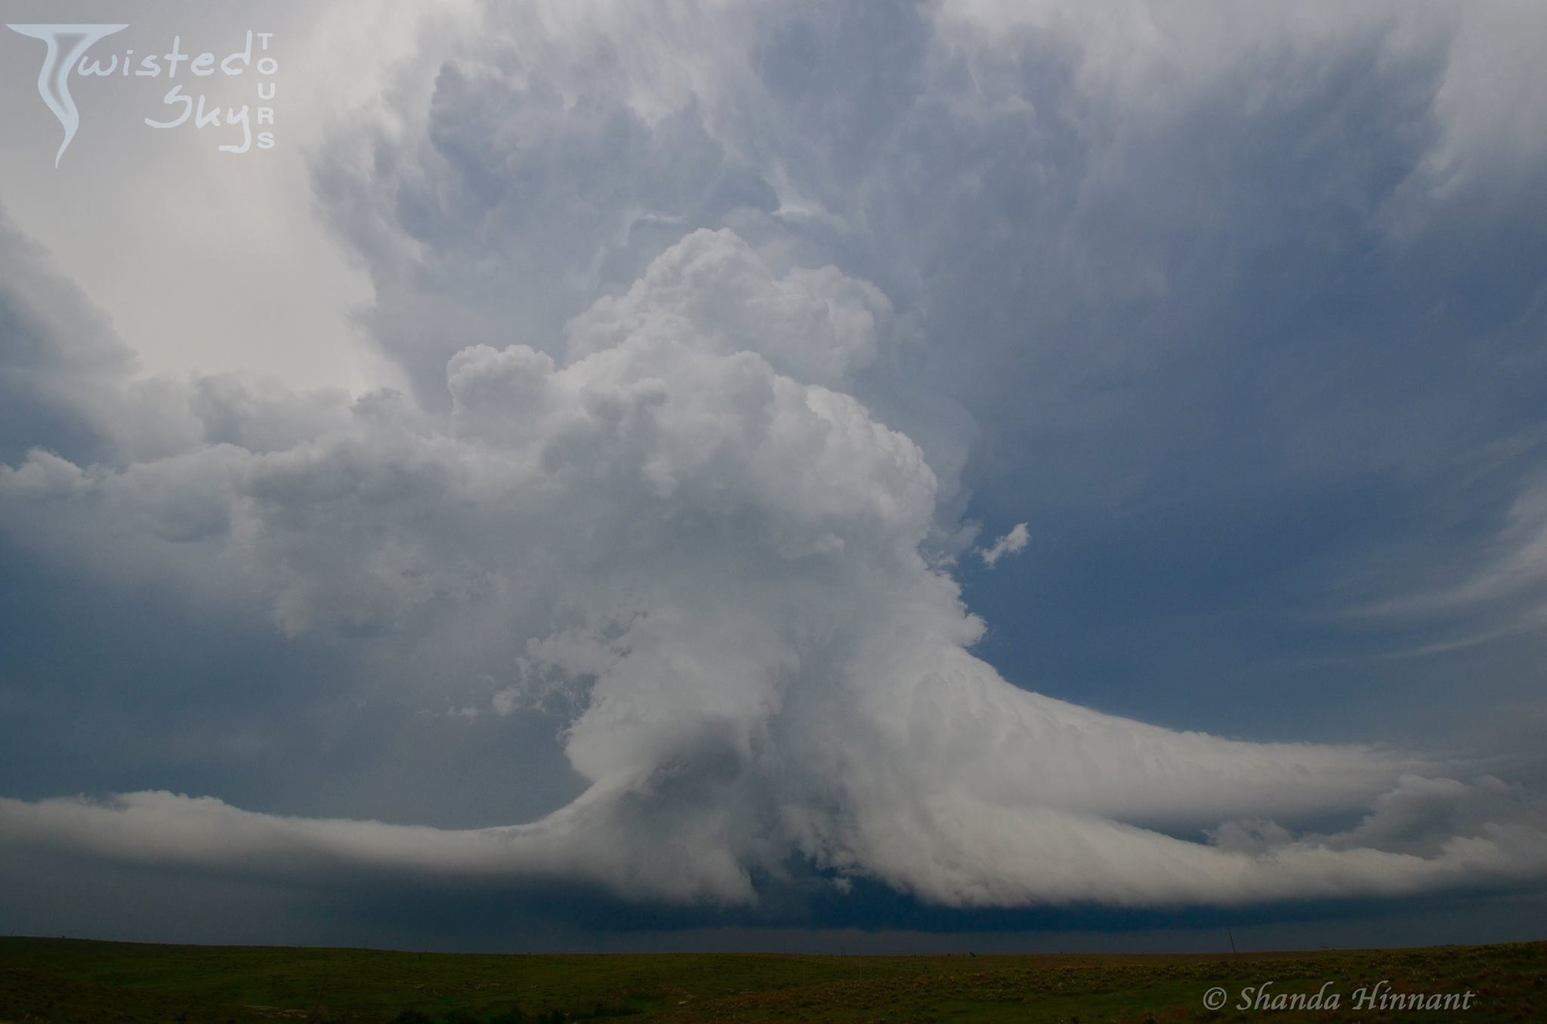 """""""Octopus Storm"""" No two storms are ever alike, but this one was truly unique. June 4, 2015 in NW Kansas, just south of Atwood."""